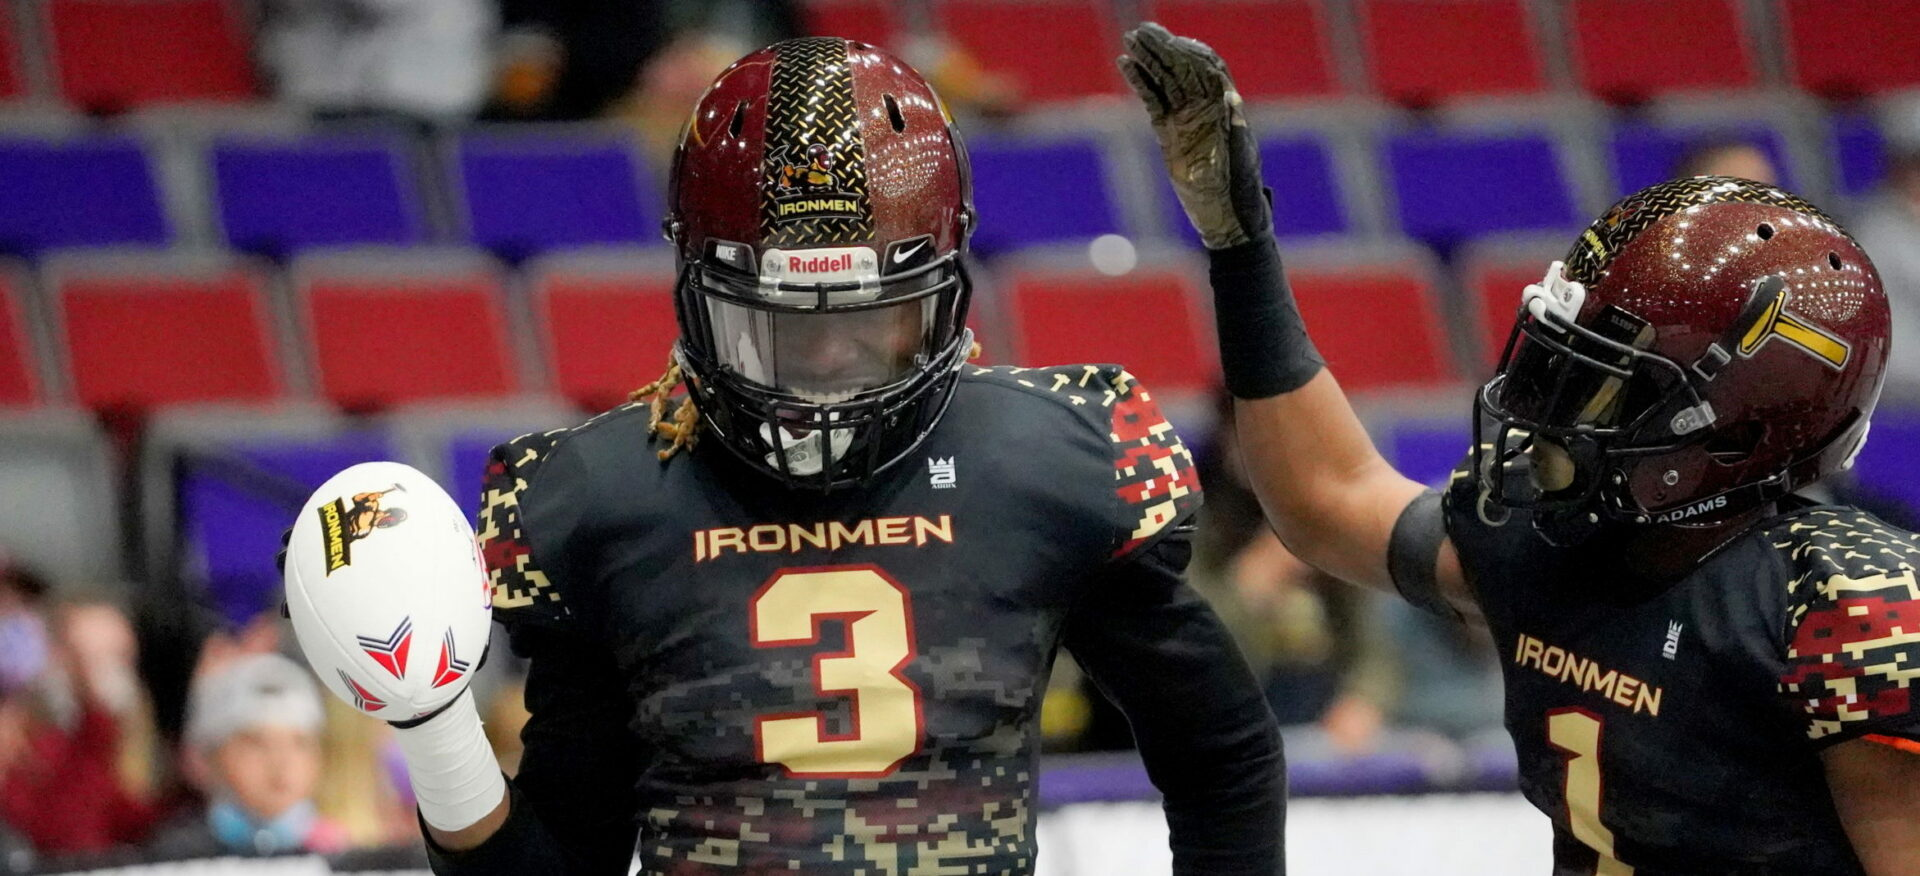 West Michigan Ironmen post second straight shutout victory with a 66-0 pounding of the visiting Carolina Predators